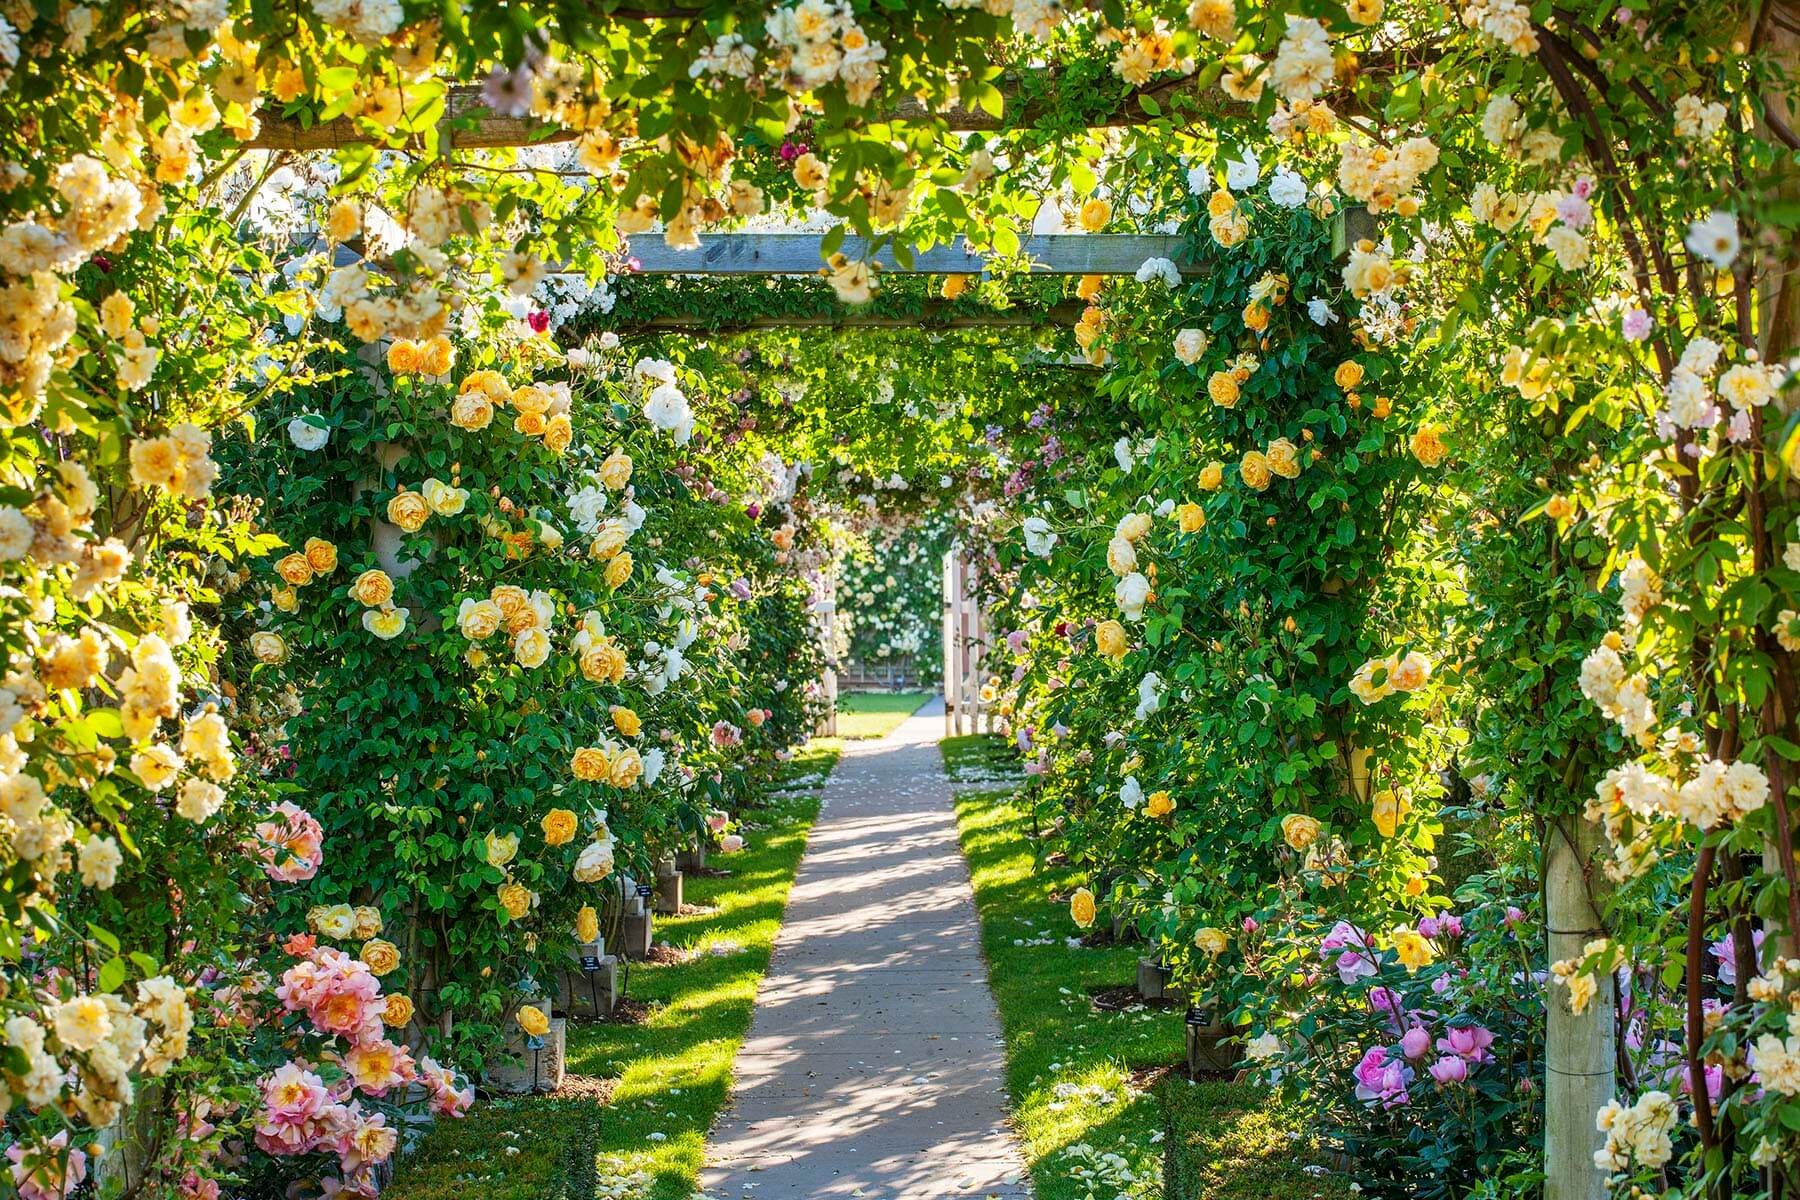 ALBRIGHTON, AUSTIN, CLIMBING, DAVID, FLOWERS, FORMAL, FRAGRANT, GARDEN, JUNE, MIDLANDS, PATH, PERGOLA, PROFUSION, ROSA, ROSE, ROSES, SCENT, SCENTED, SUMMER, TRACK, WALKWAY, WEST